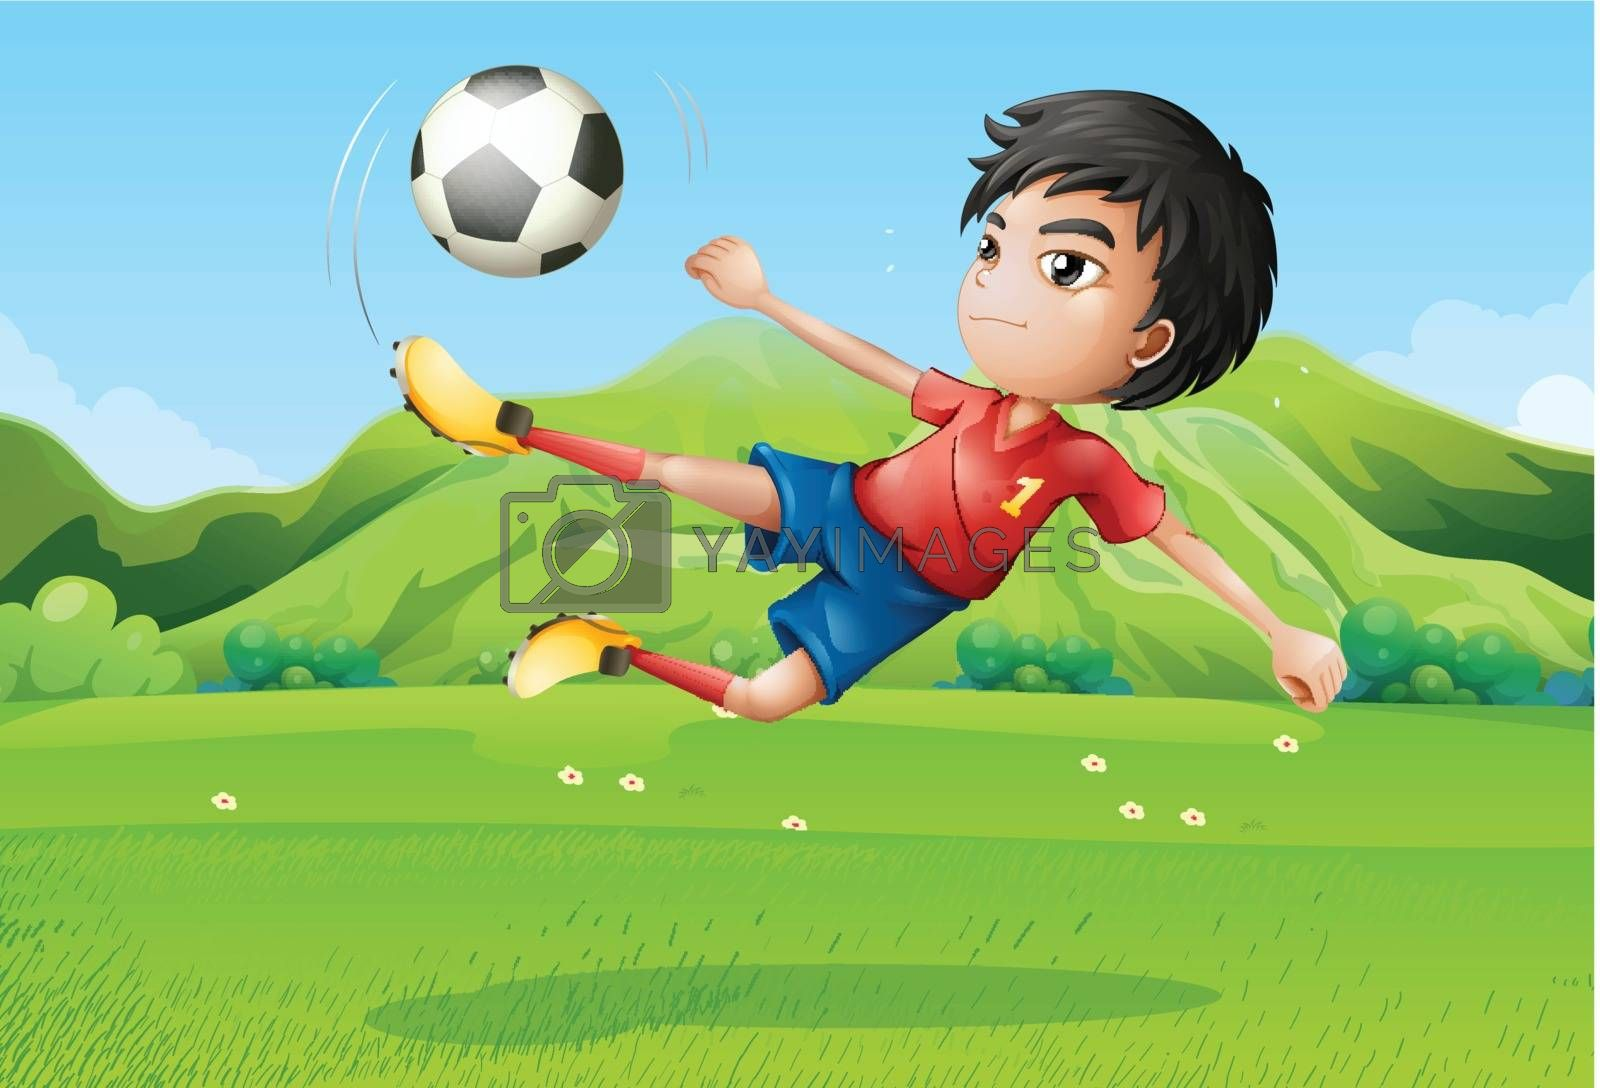 Illustration of a young boy playing football at the field